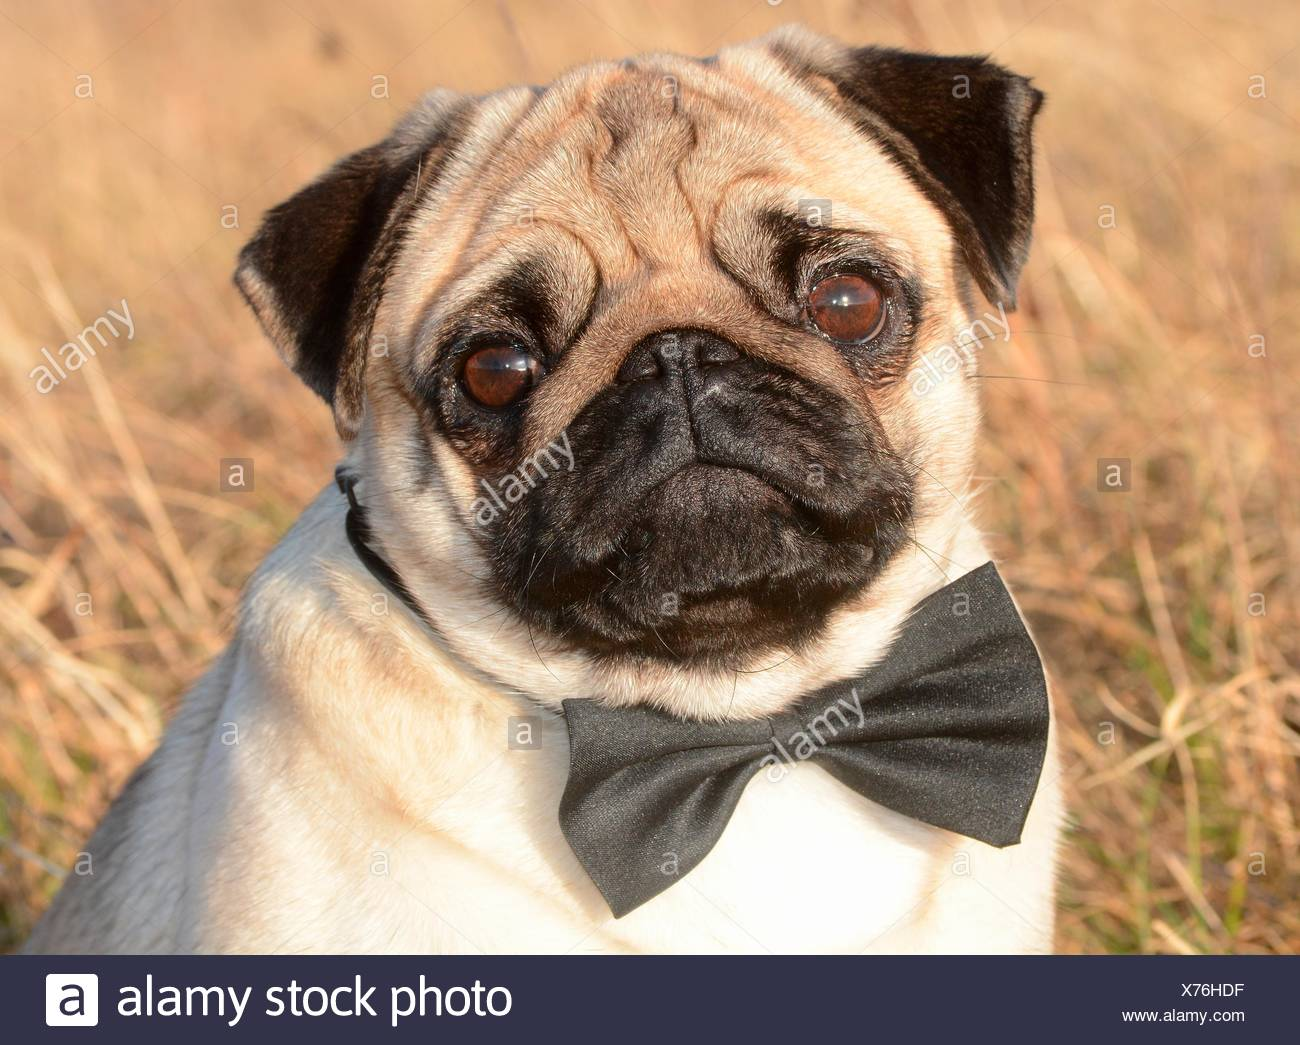 Pug with bow tie among dry grass, Sweden Stock Photo